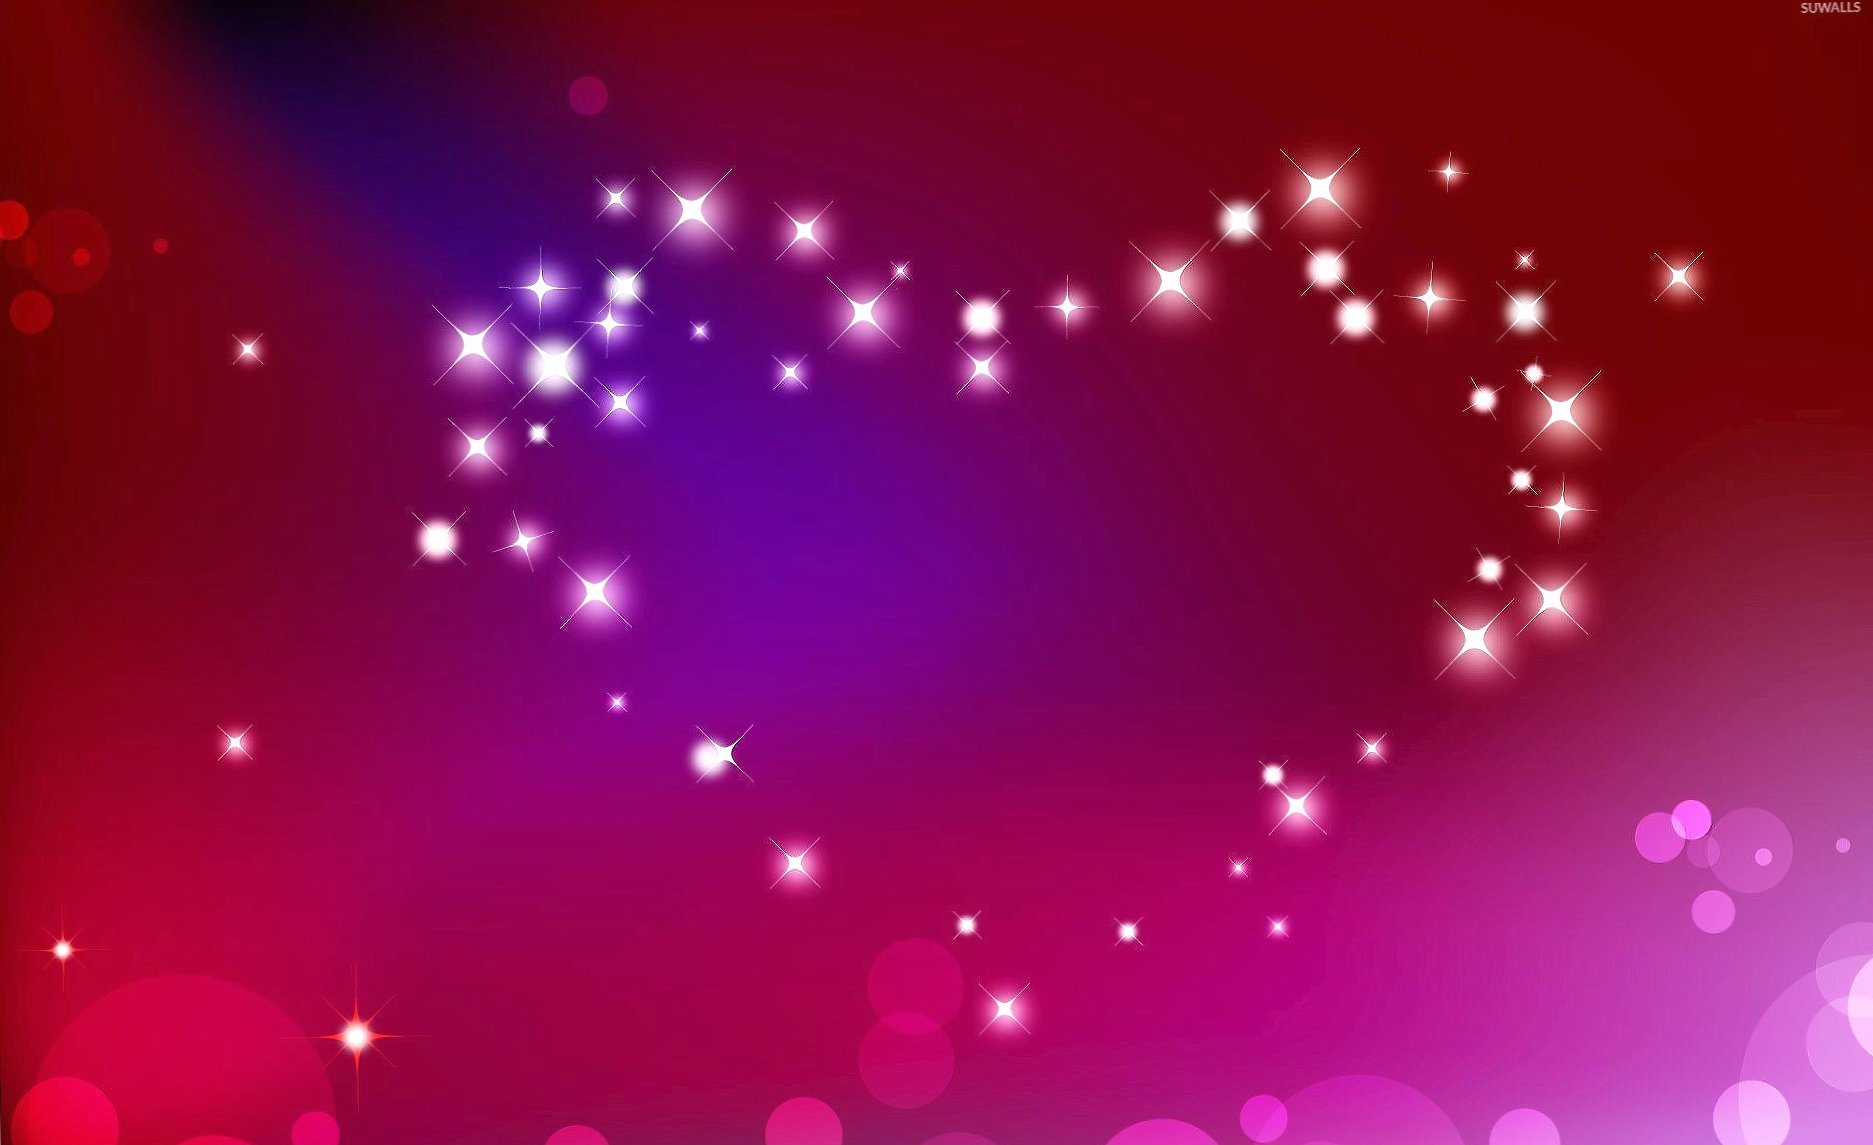 Heart made of sparkles wallpapers HD quality